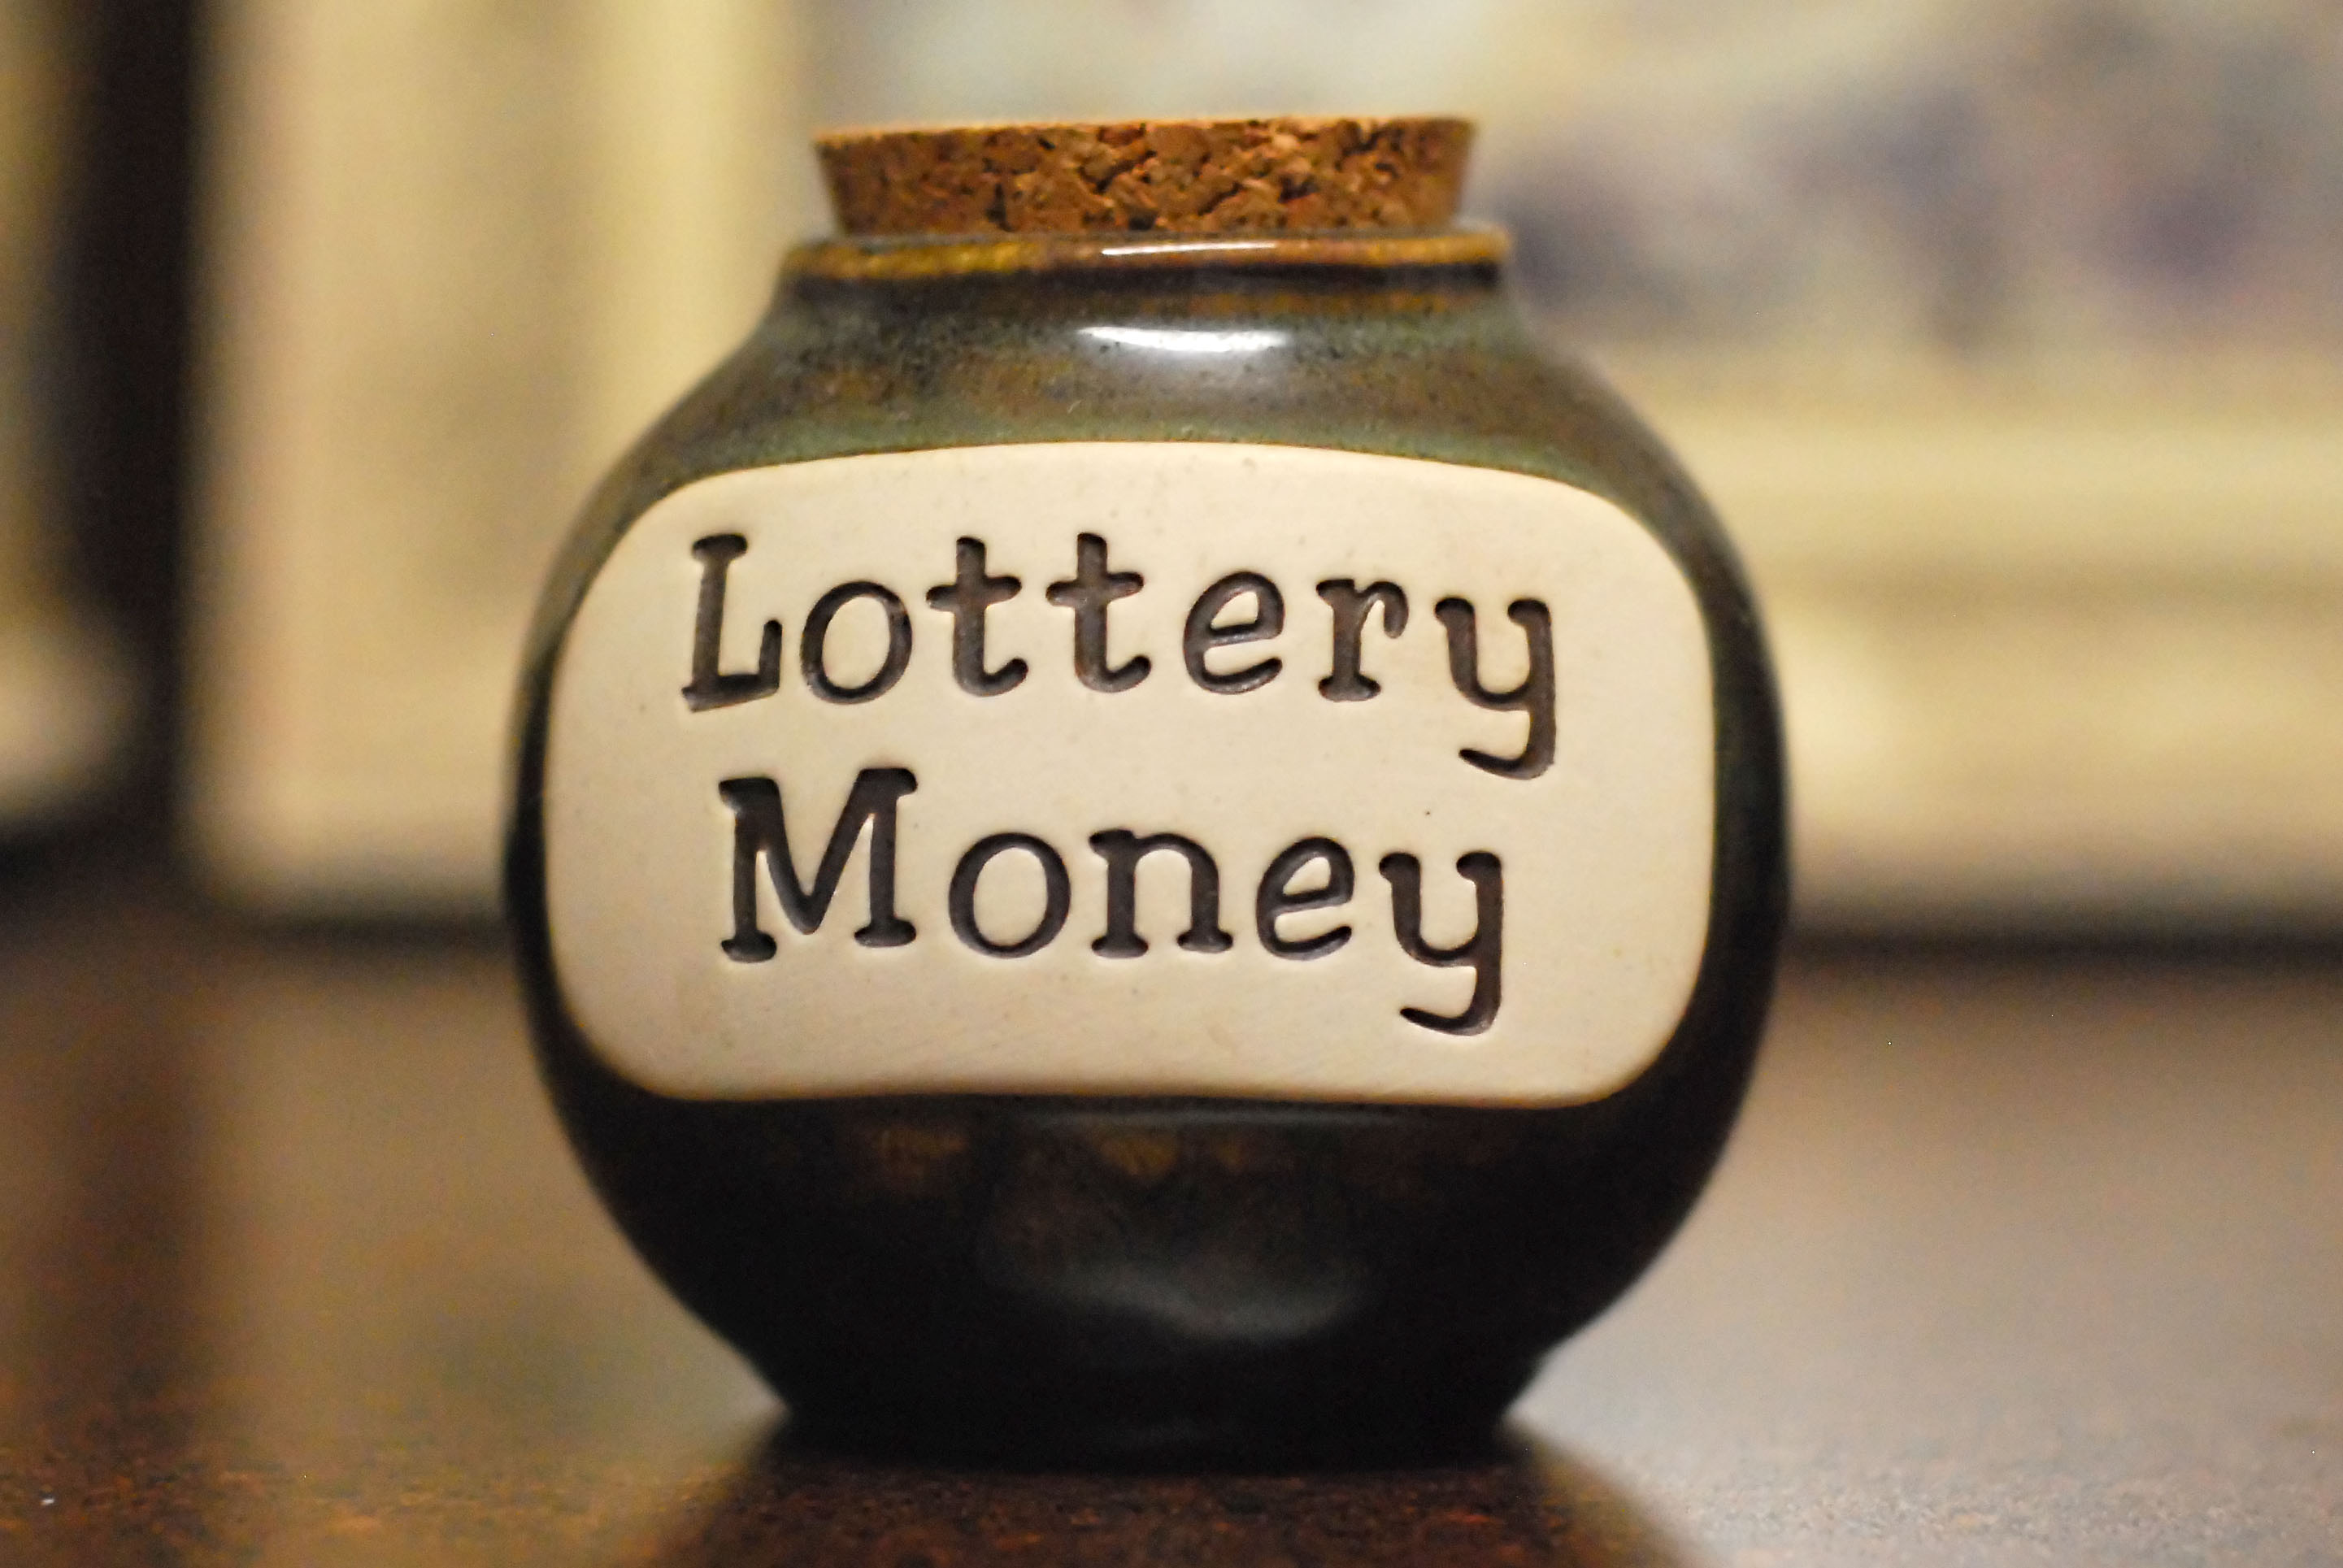 america as a lottery public seminar saving money for lottery acirccopy lisa brewster flickr